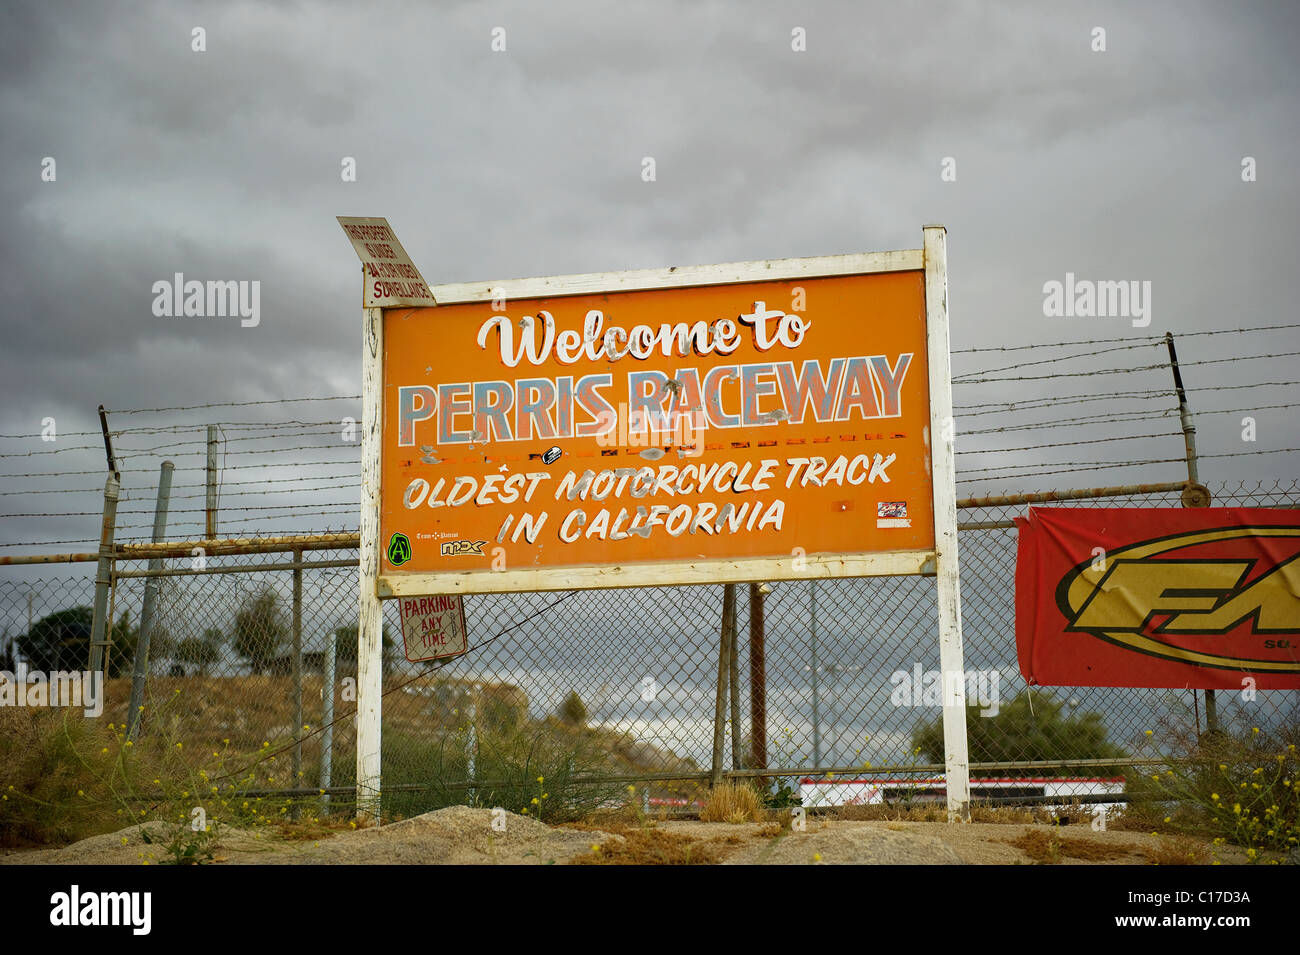 Perris Raceway Oldest Motorcycle Motocross Track In California Sign Stock Photo Alamy